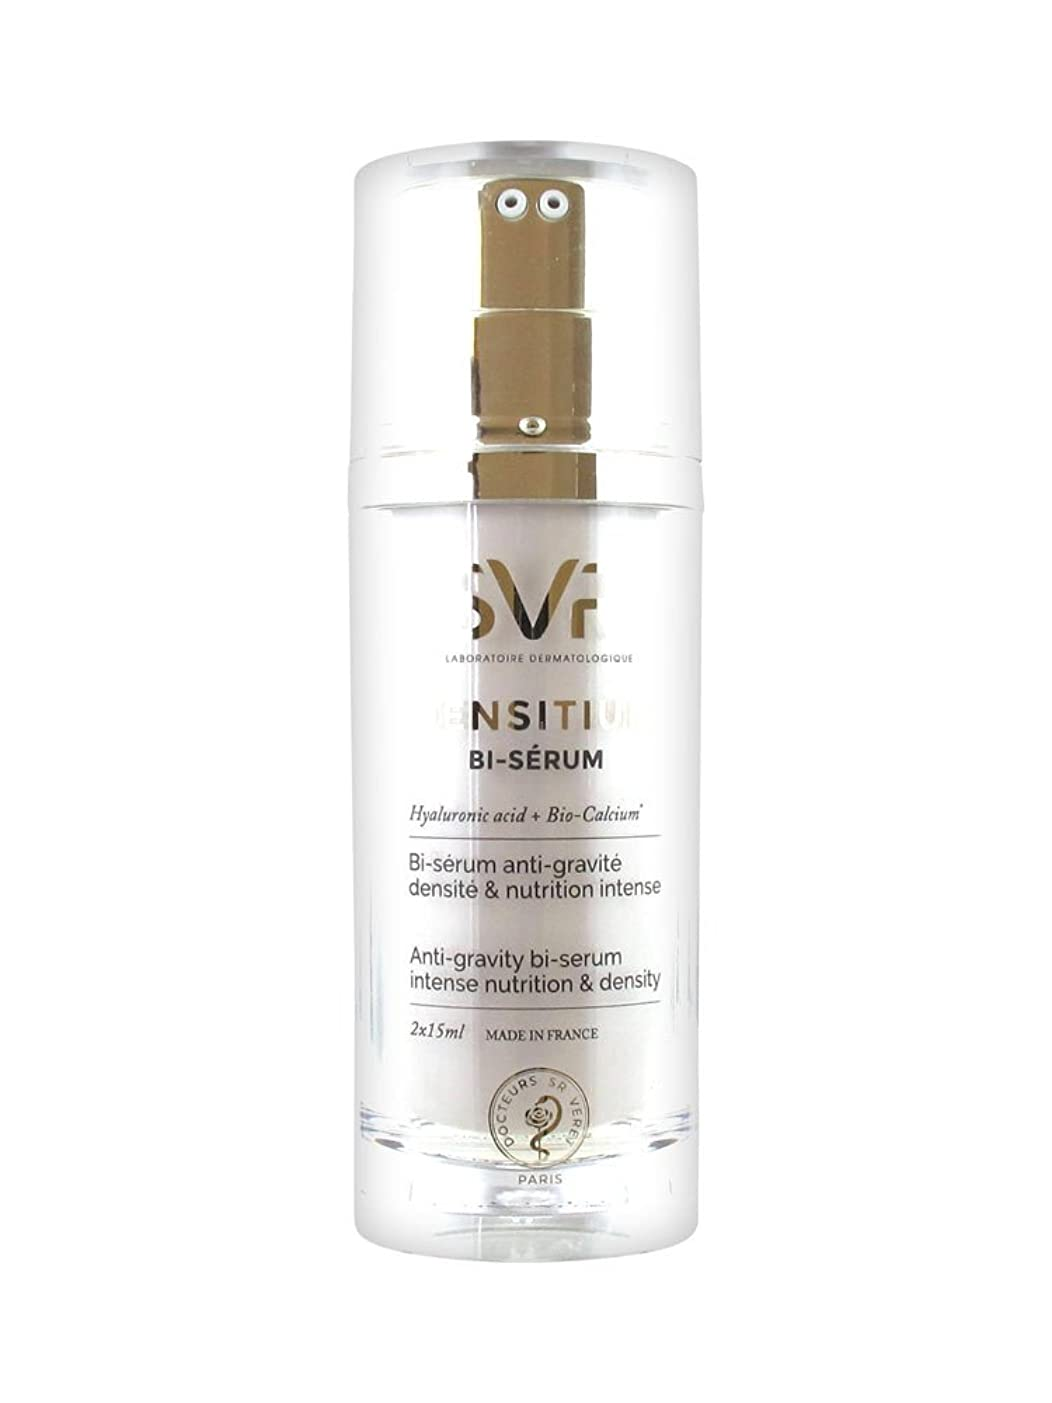 固体好色なビリーSVR Densitium Bi-Serum Intense Nutrition and Density 2x15ml